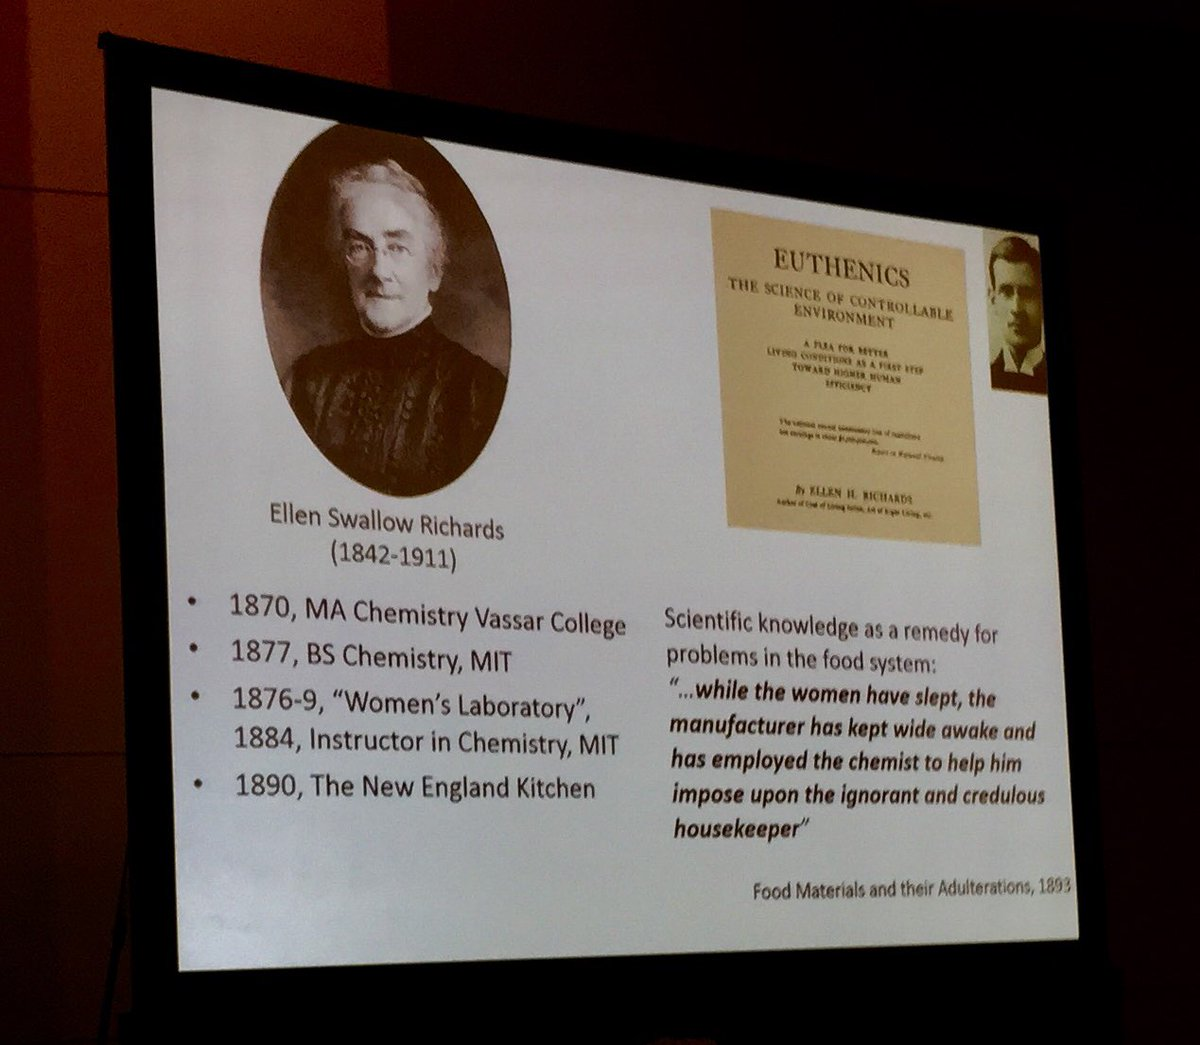 Early engaged female  #scientist asked questions about food  - first echos of modern food debate. #FNCE2017<br>http://pic.twitter.com/eTqgUvP0JA &ndash; à McCormick Place